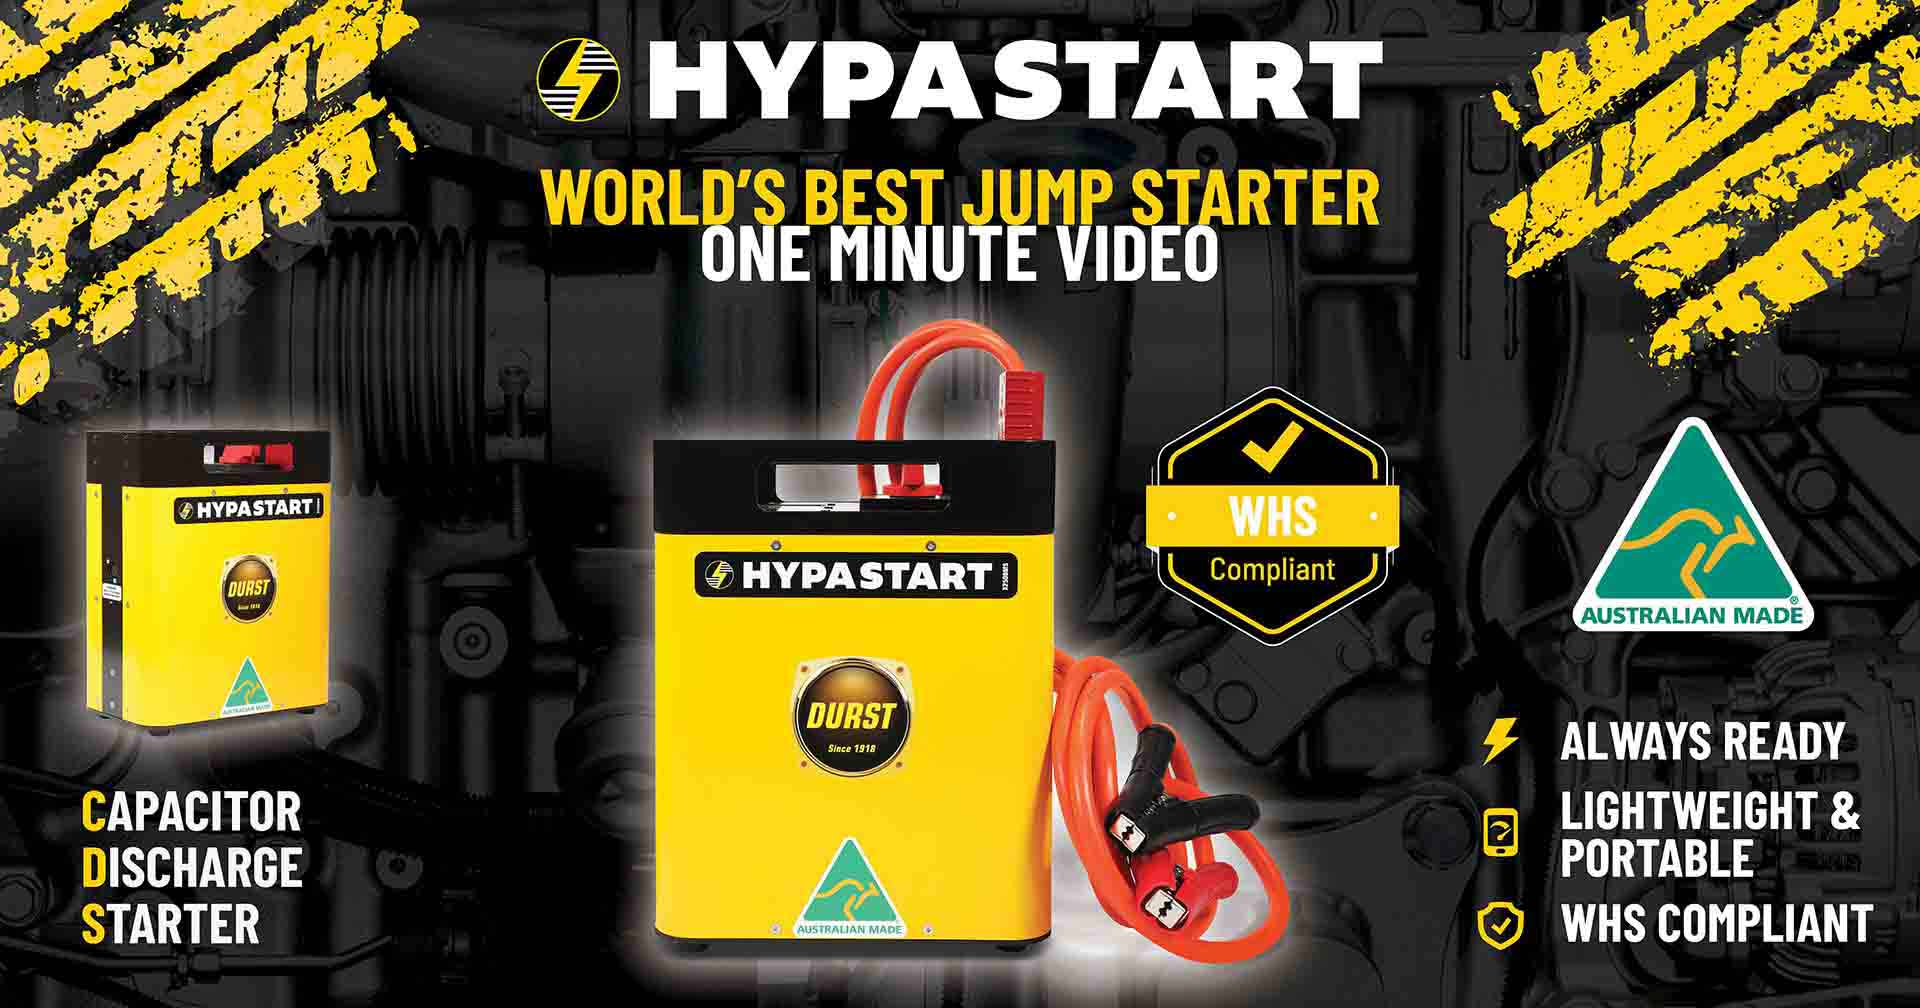 HYPASTART-Feature-Image-One-Minute-Video